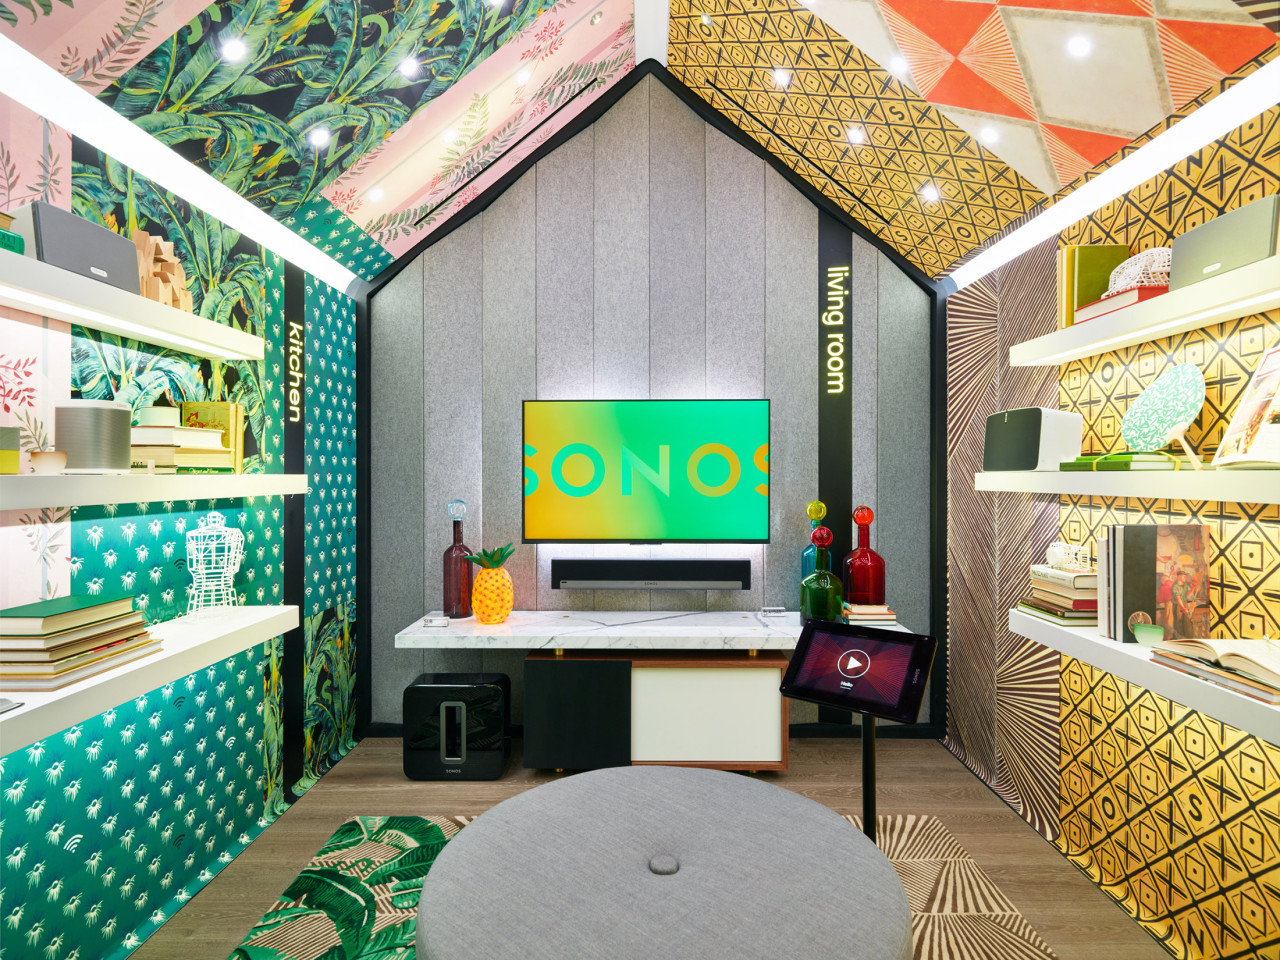 Sonos Opens Their First Retail Store In SoHo